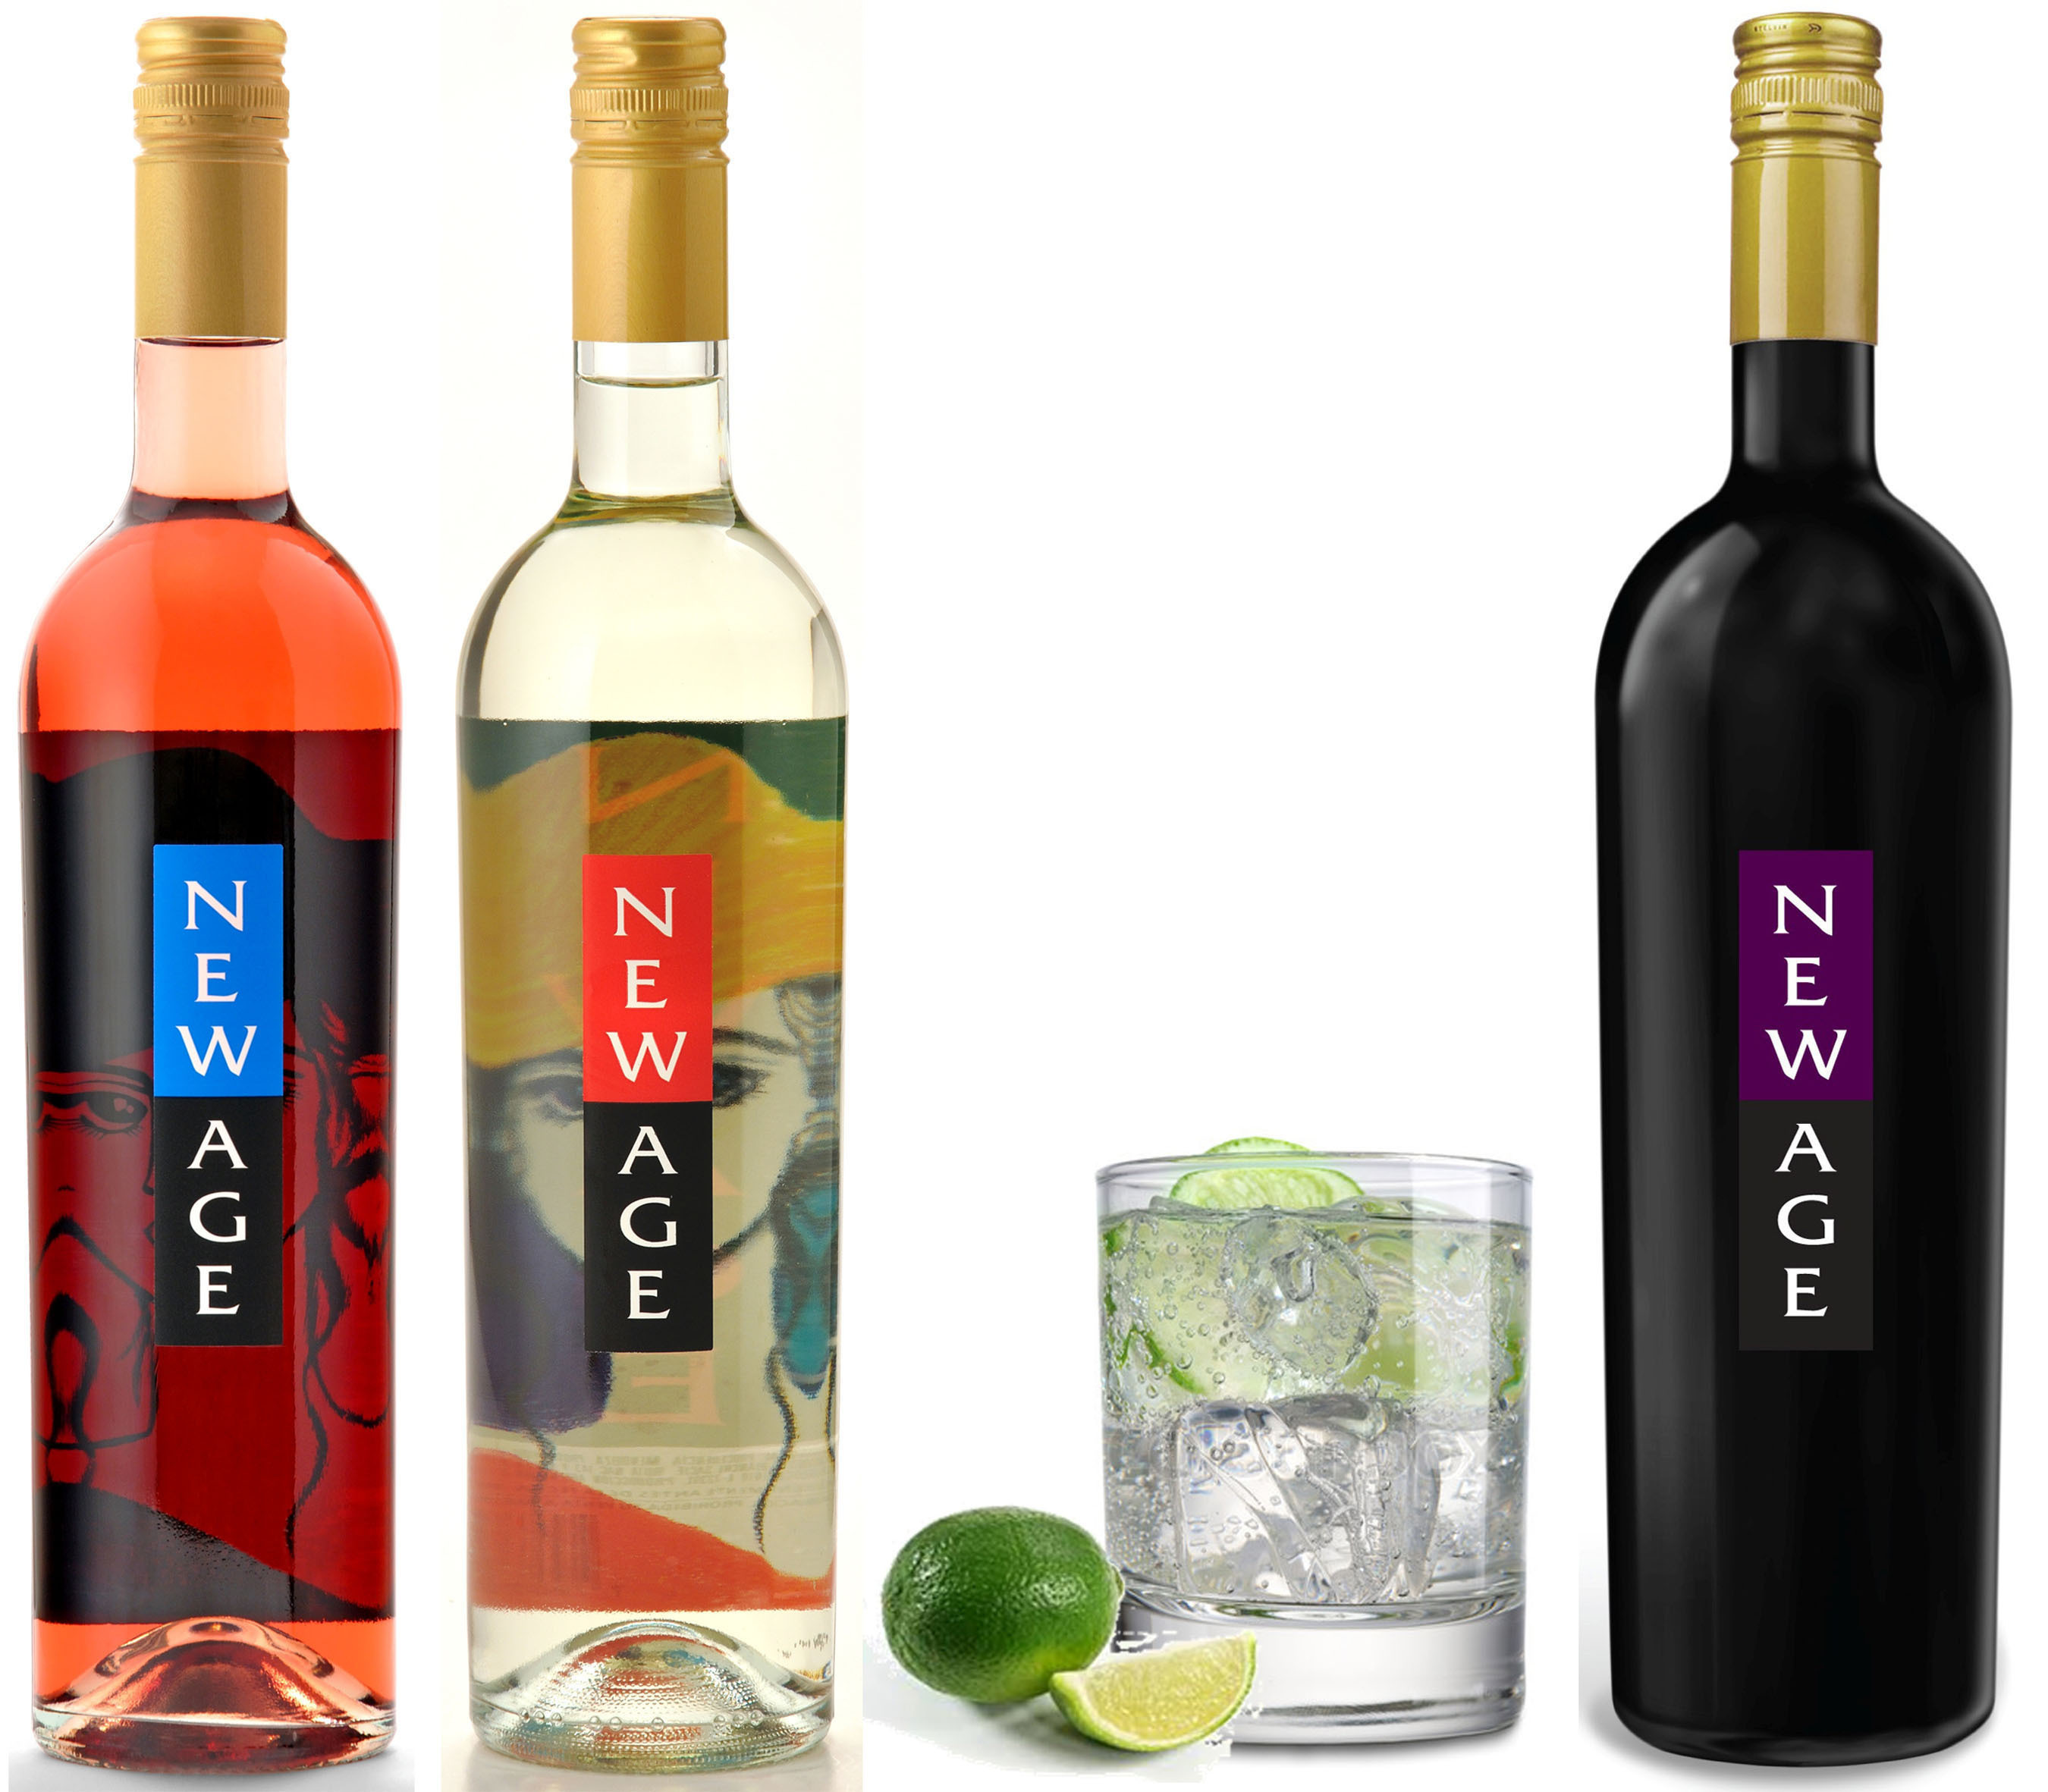 NEW AGE WINES LEADS THE WAY FOR WINES IN A COCKTAIL